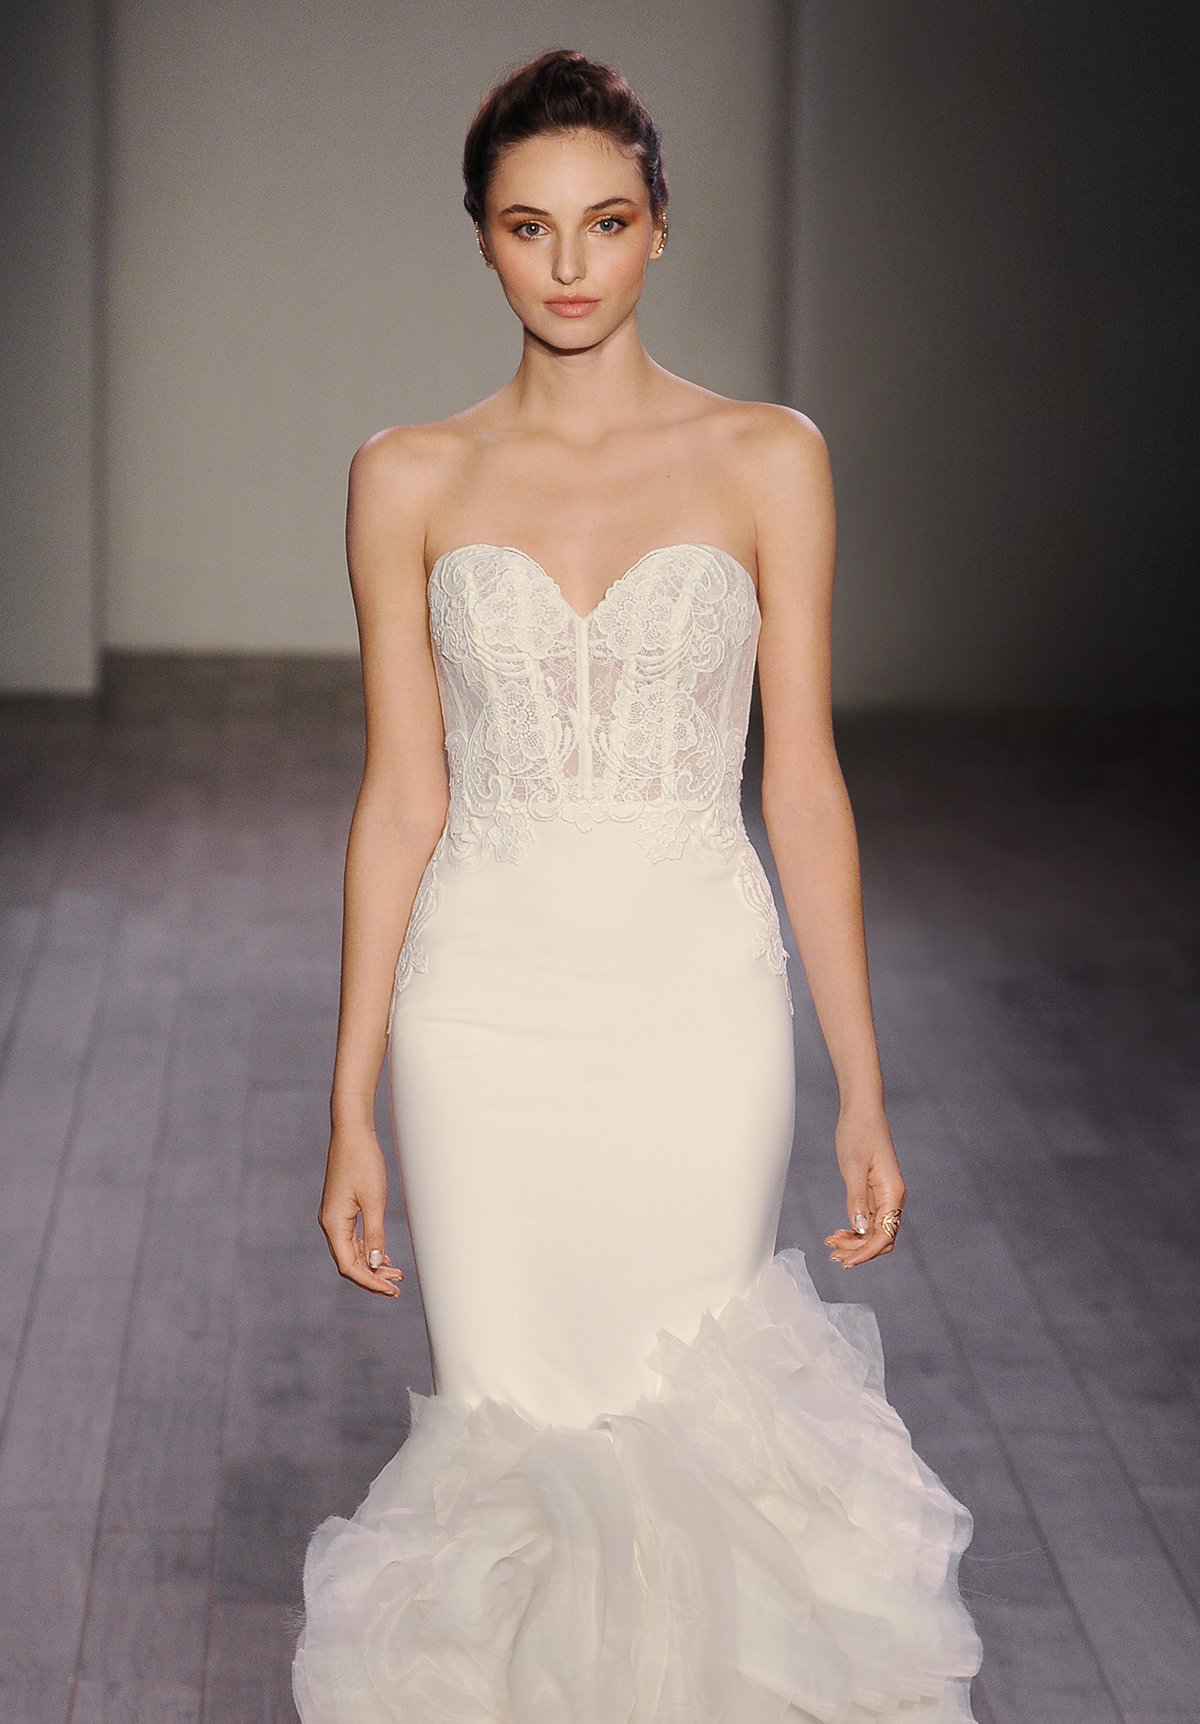 Bridal Gowns and Wedding Dresses by JLM Couture - Style 3610